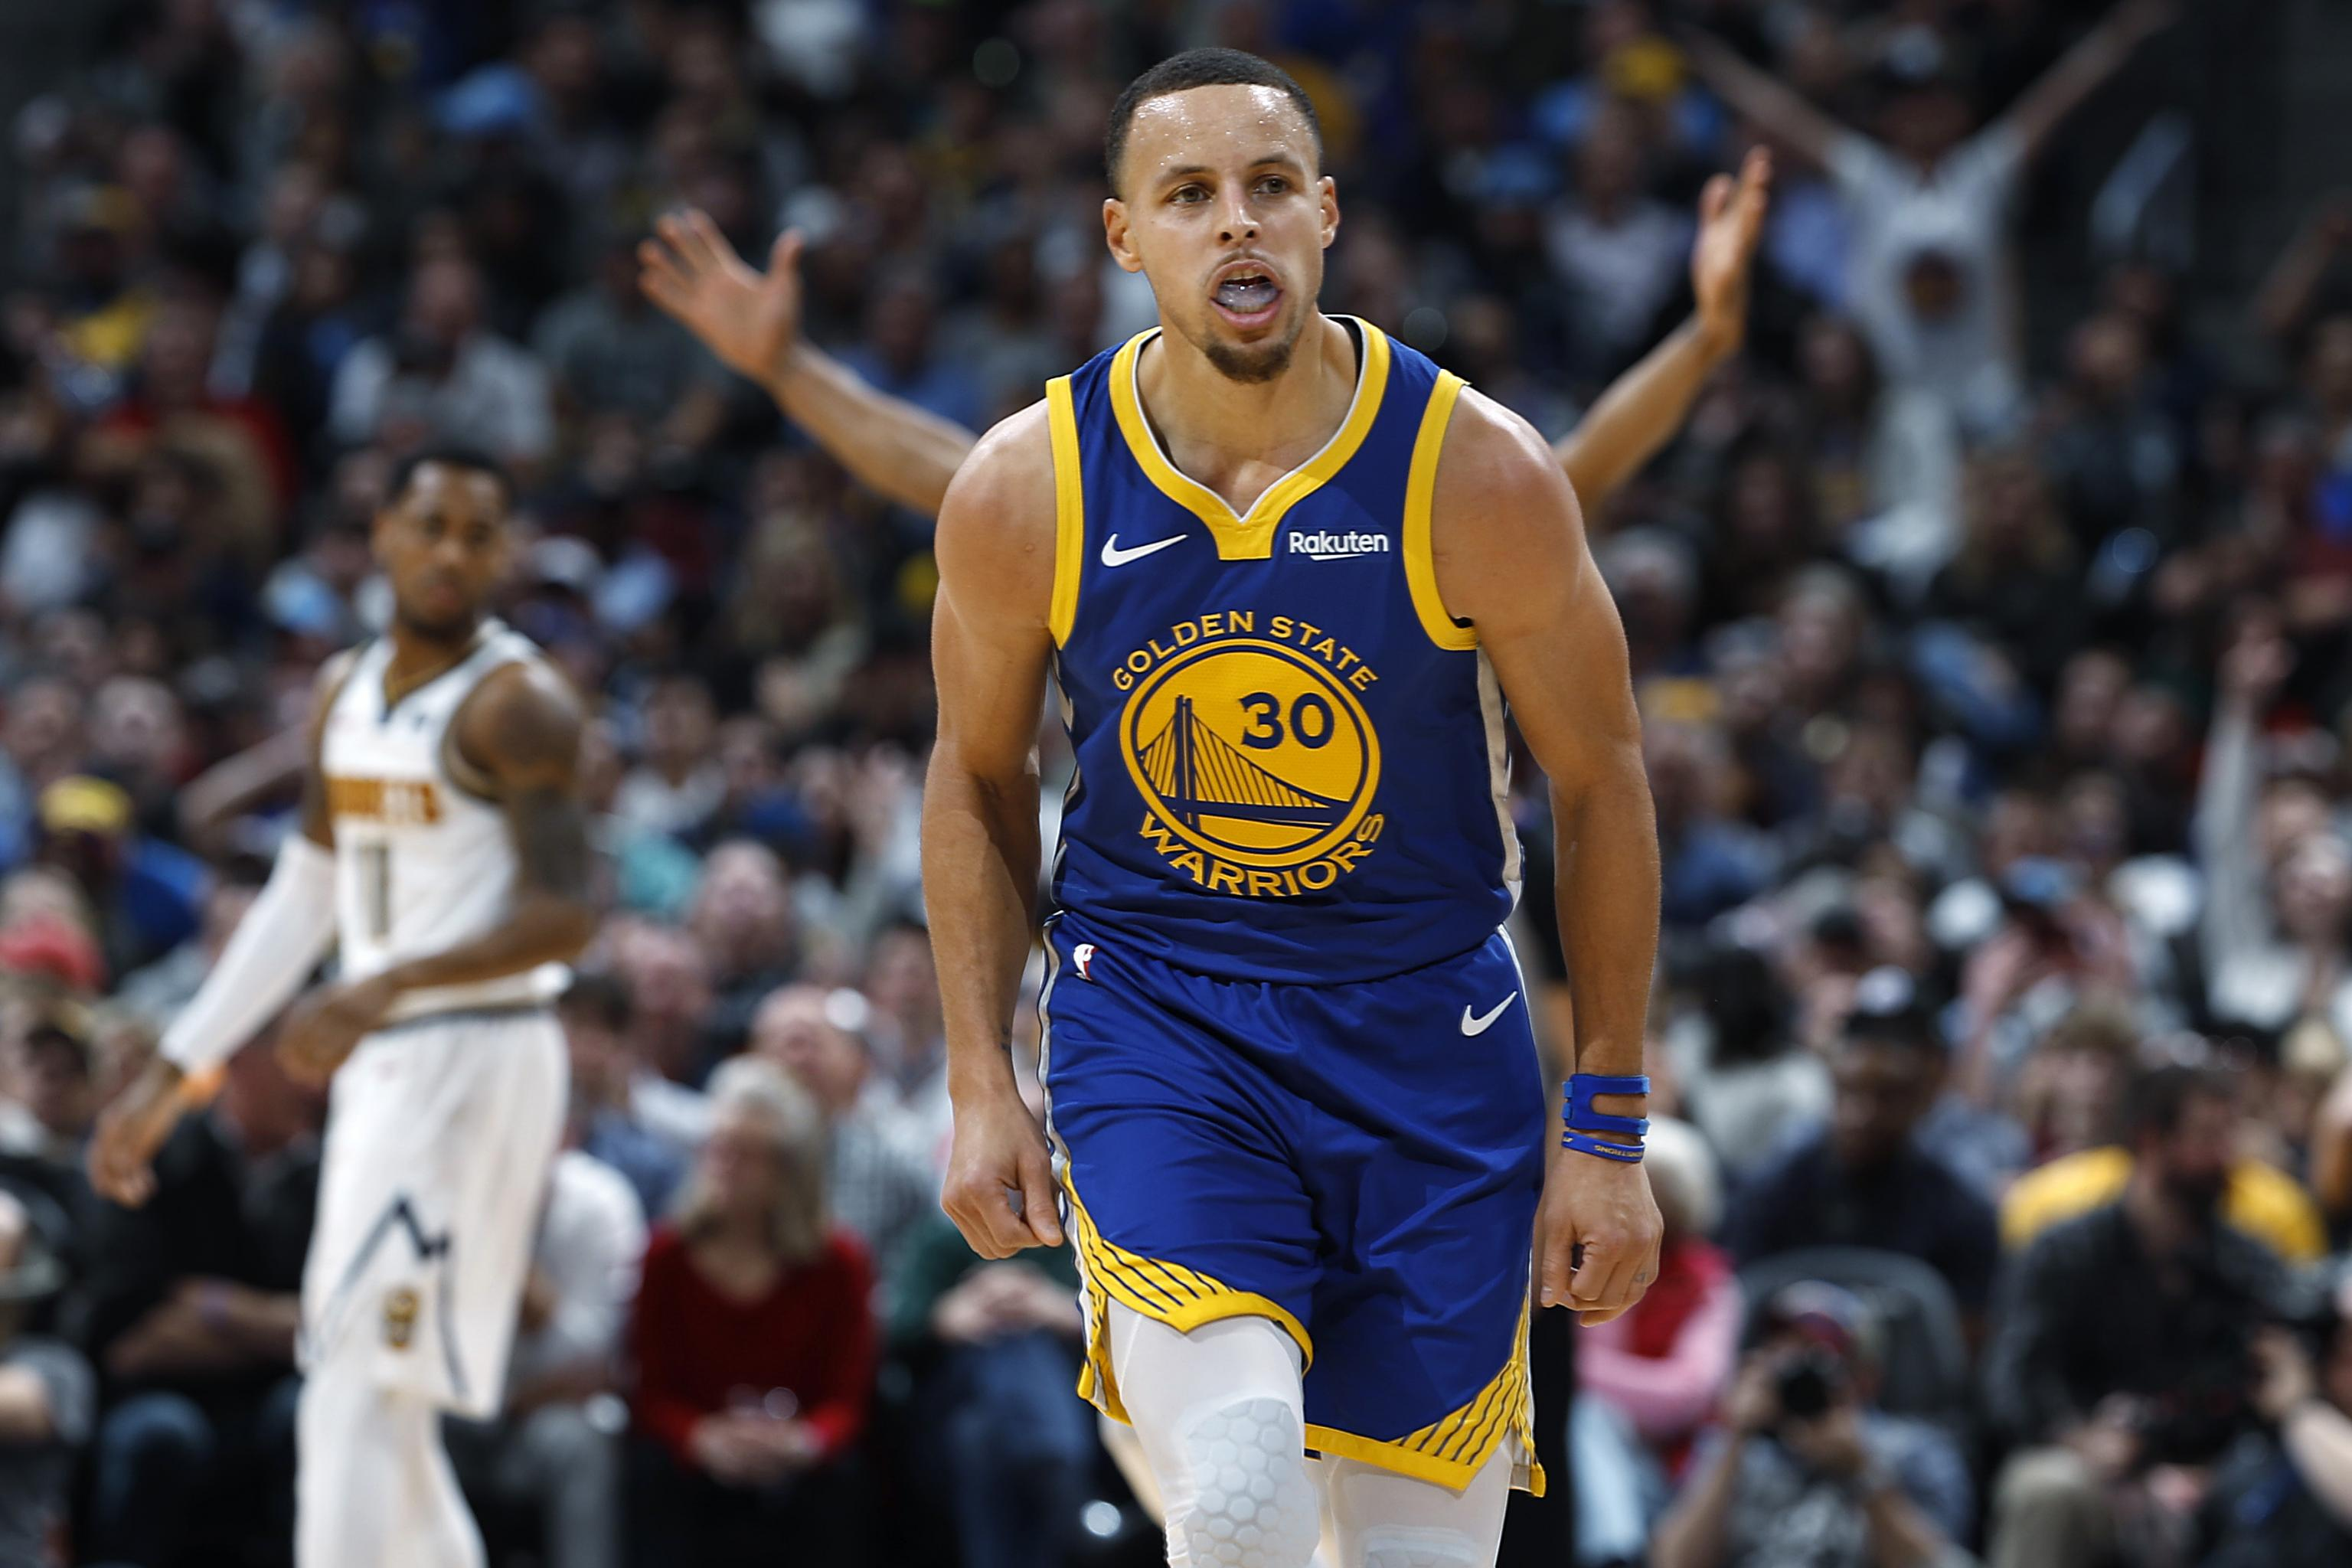 timeless design d2ae7 f4201 NBA Playoffs 2019: Predictions for Top Seeds and Final ...